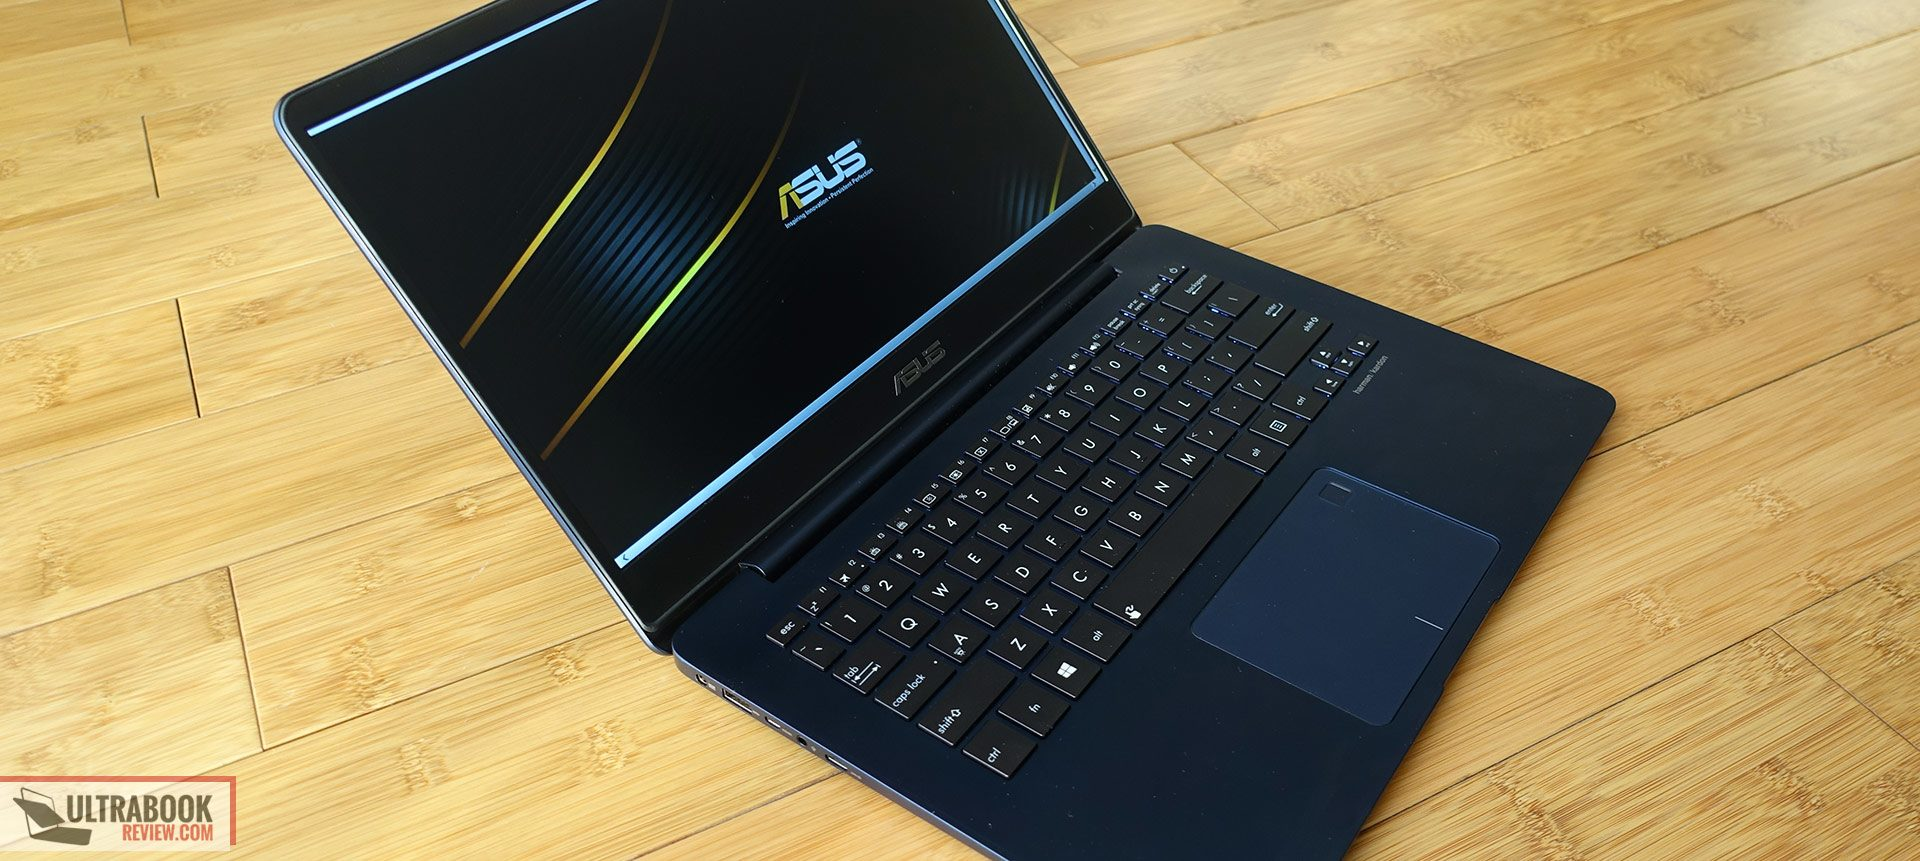 If you're after a min-range compact ultrabook with a great screen and fast hardware, the Zenbook UX430 should be on your list